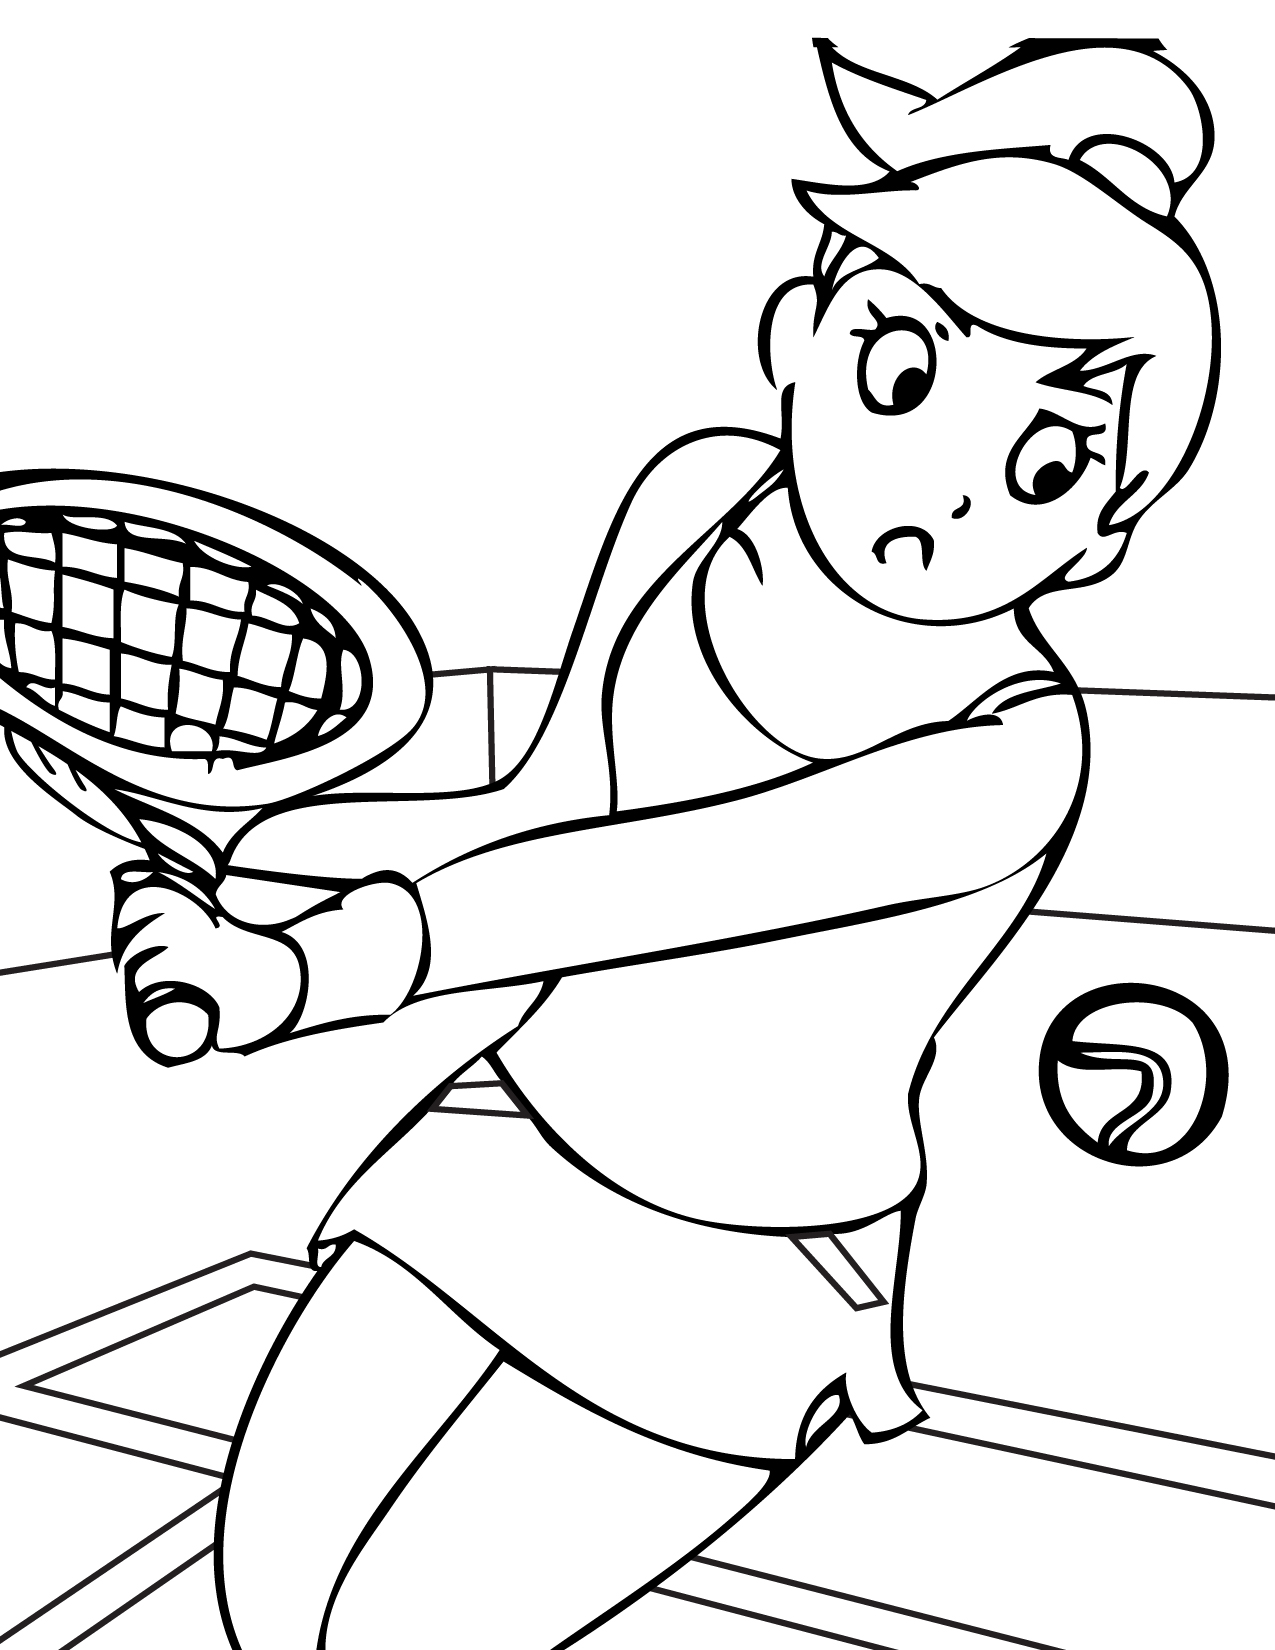 Sports Drawing Books At Getdrawings Com Free For Personal Use